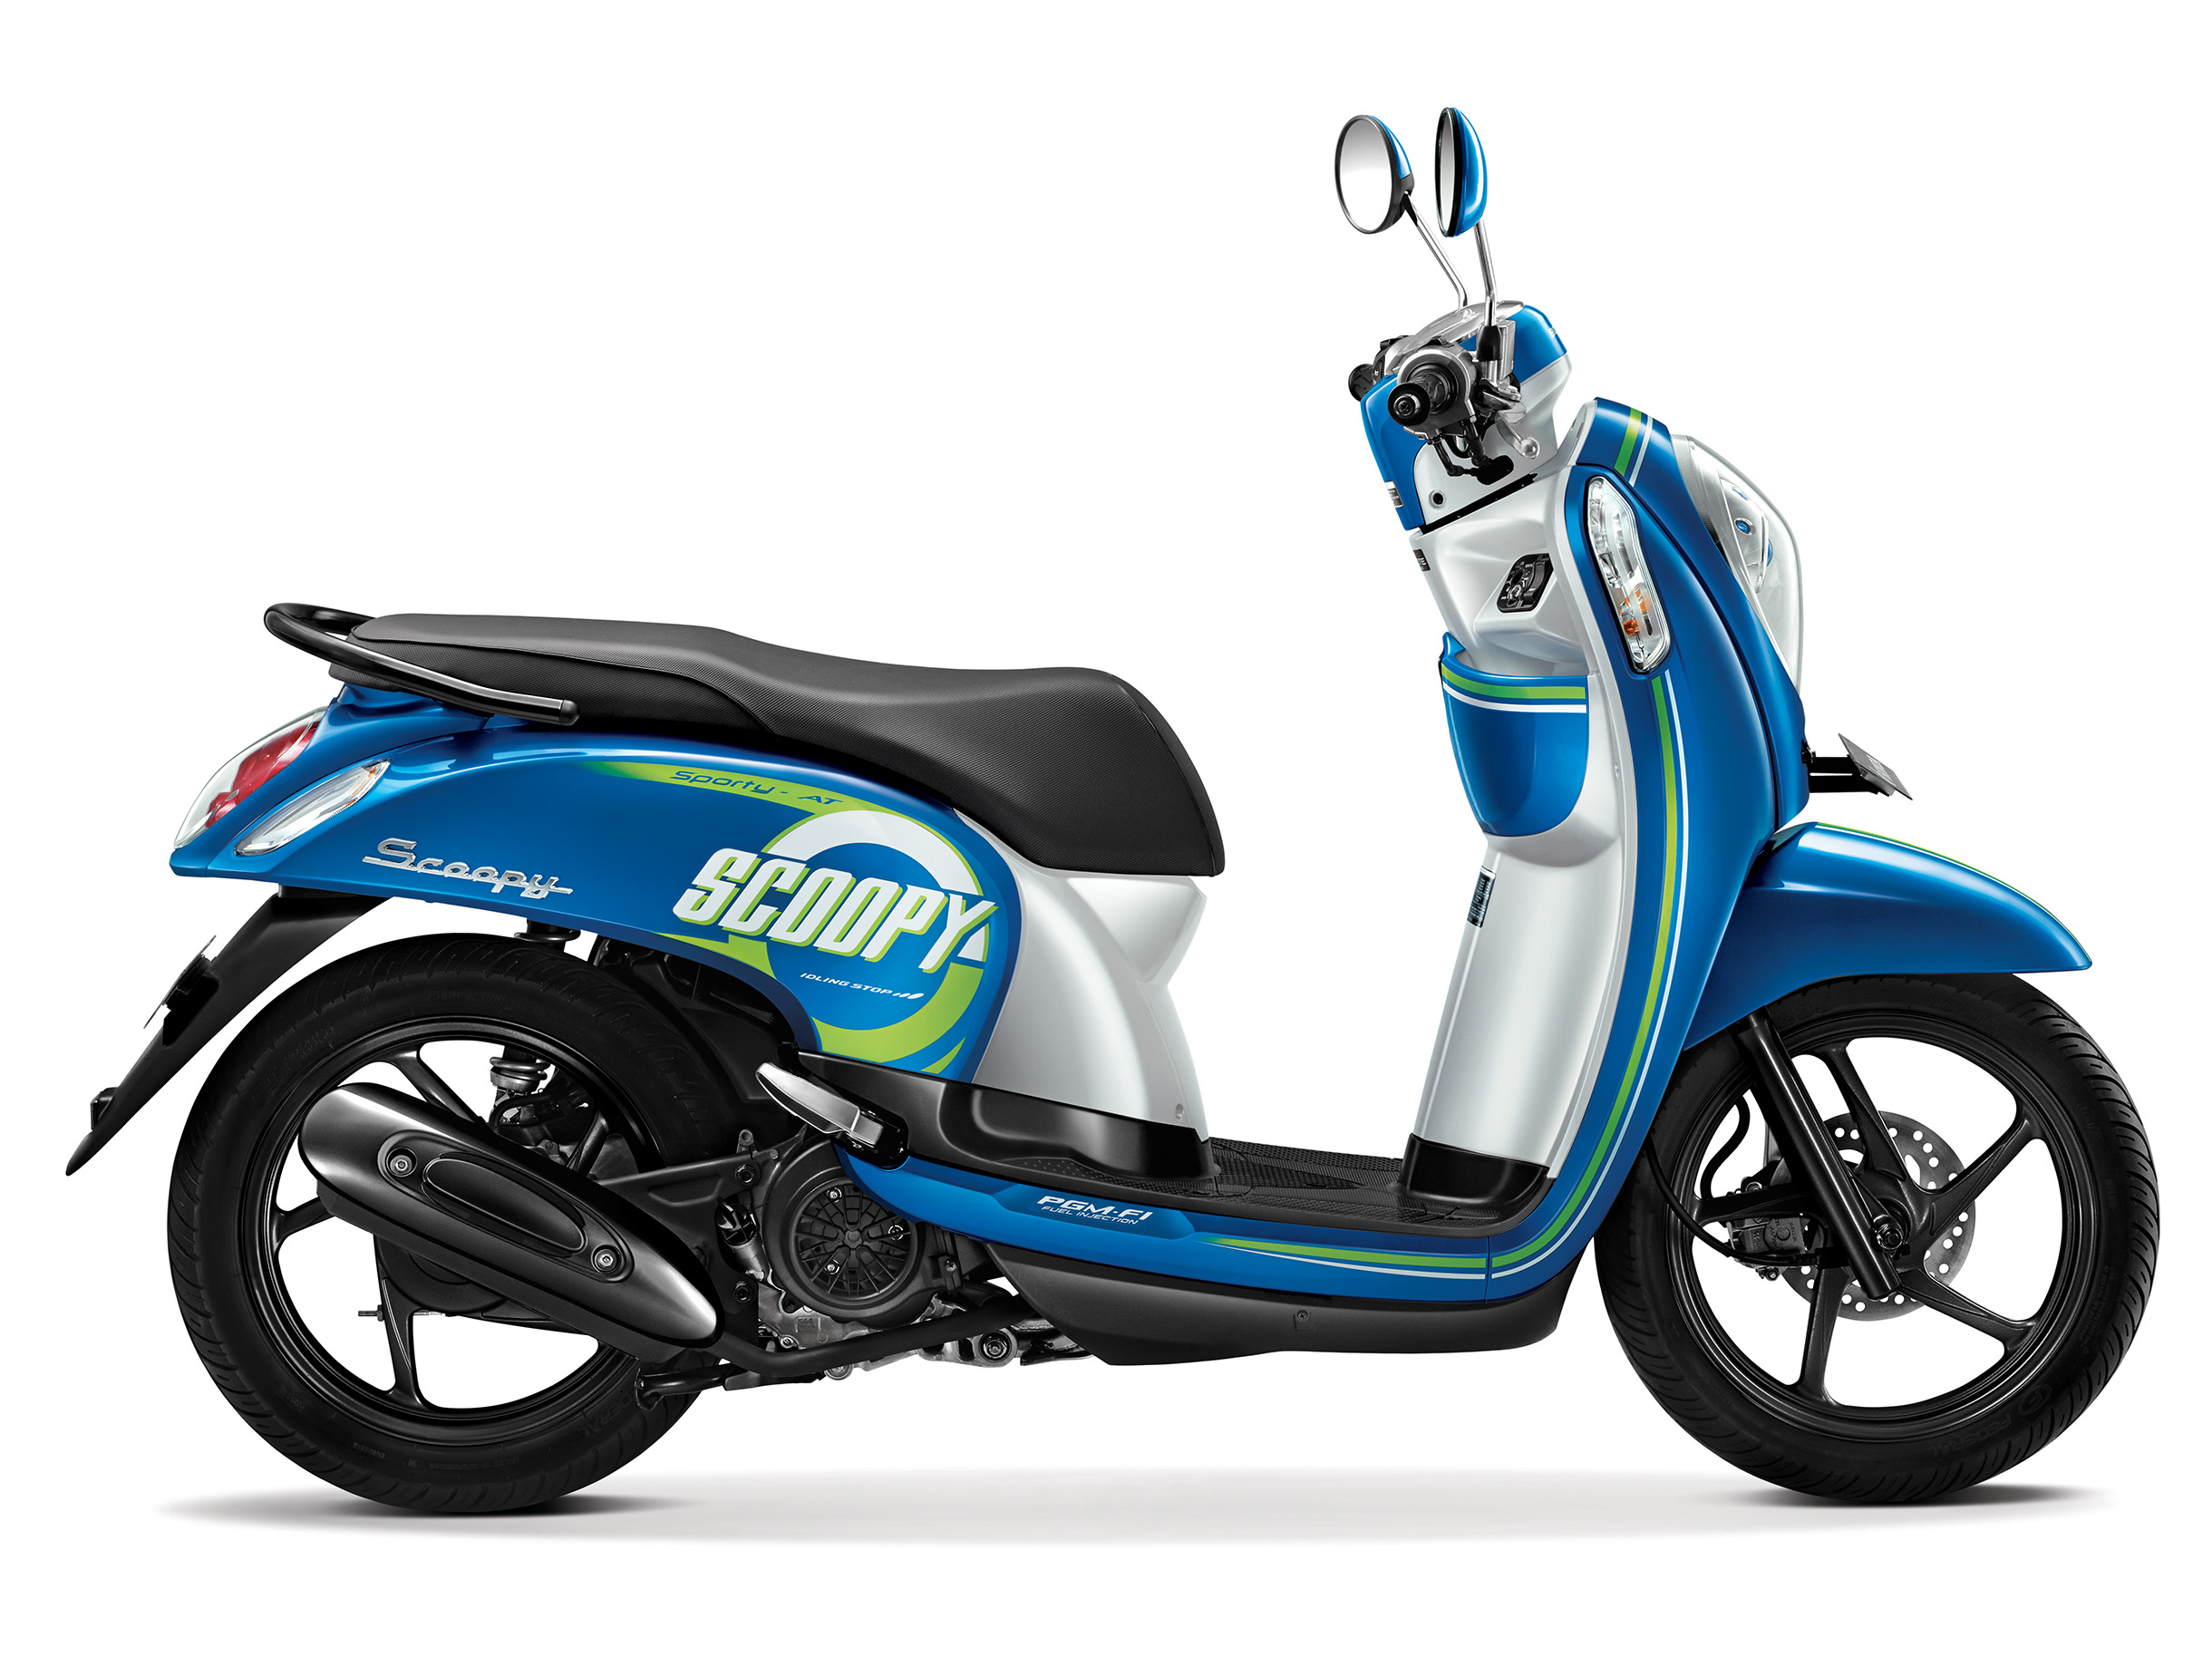 81 Modifikasi Scoopy Fi Warna Putih Kumpulan Modifikasi Motor